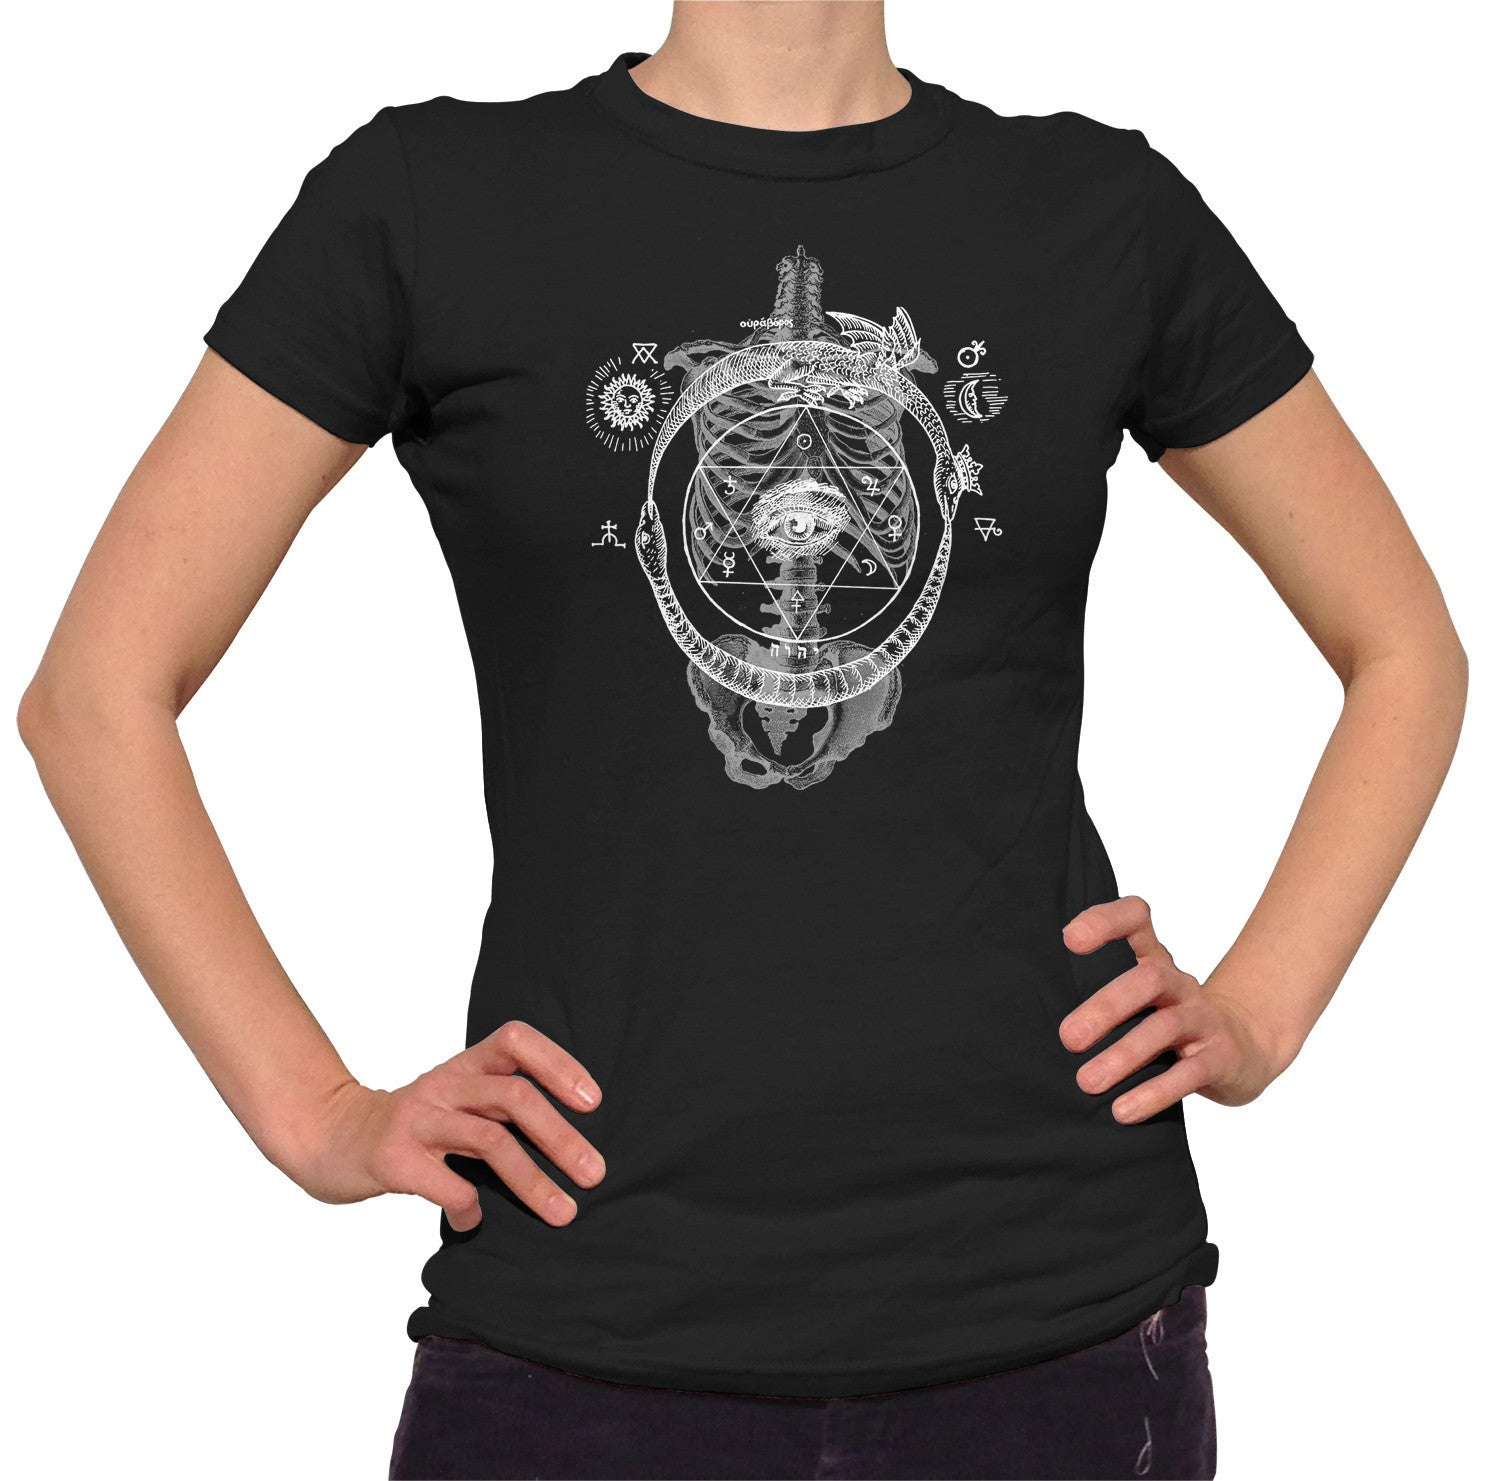 Women's Skeletal Alchemy Collage T-Shirt - Juniors Fit